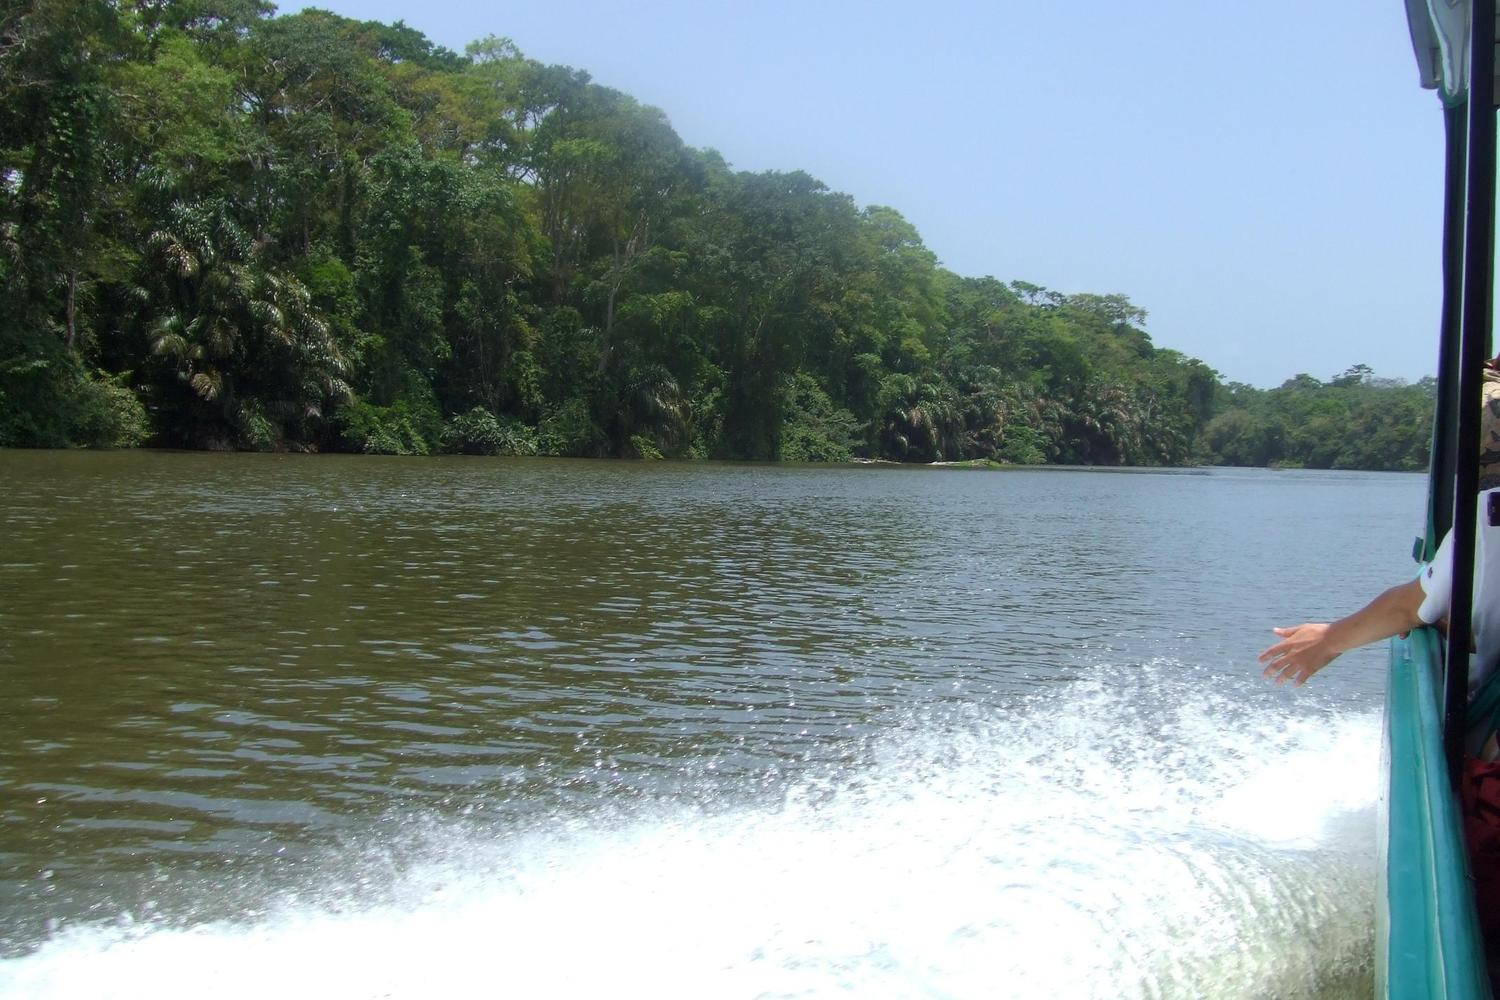 Travelling into Tortuguero by boat